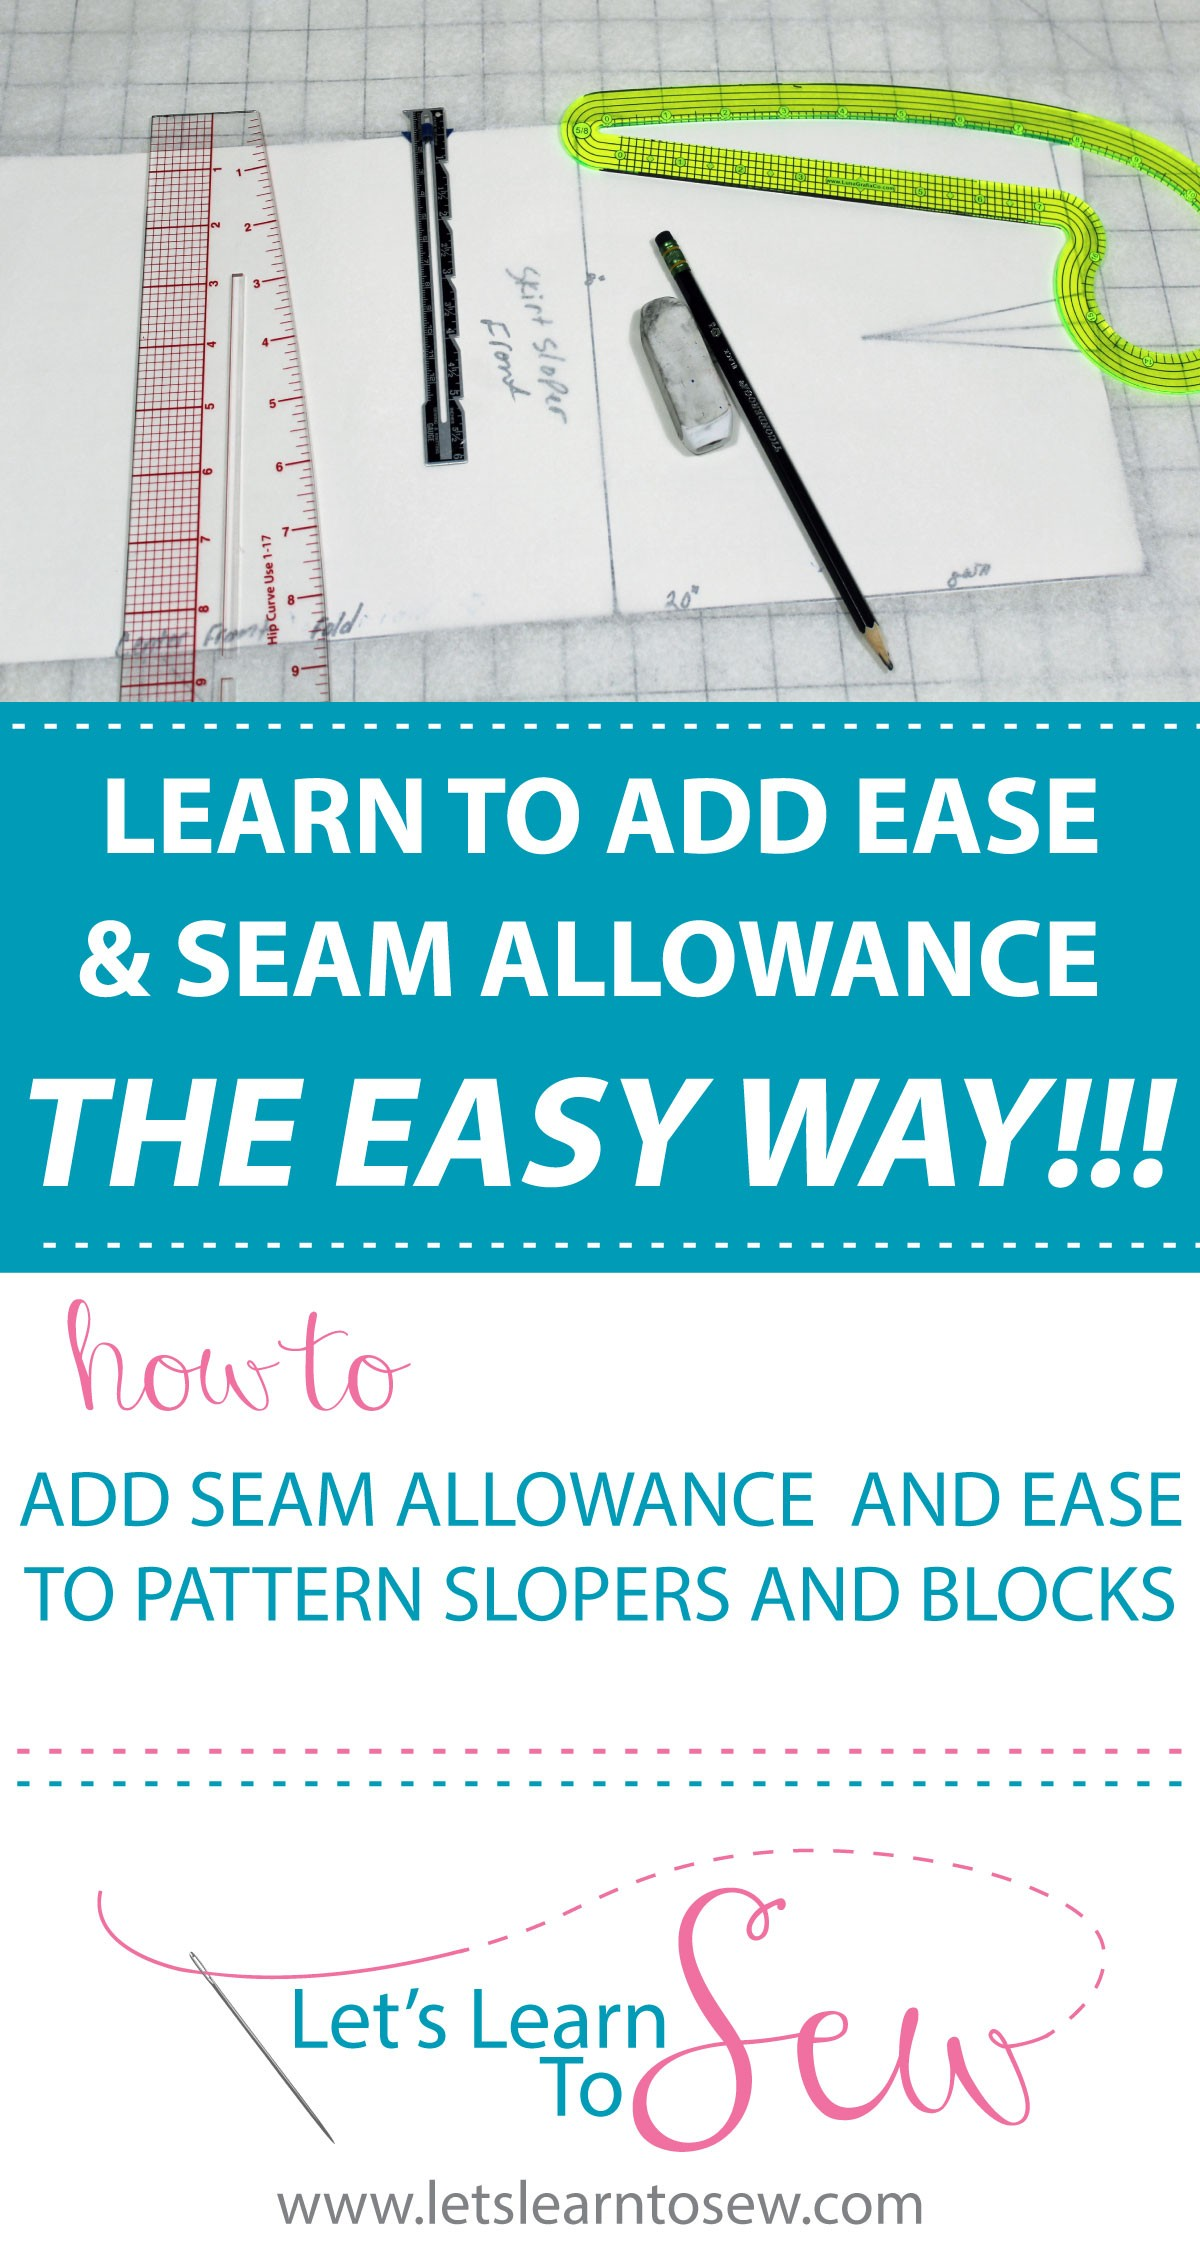 How to Add Seam Allowance and Ease. Learn why and how to add seam allowance and ease to your slopers and pattern blocks. Clear and easy instructions.